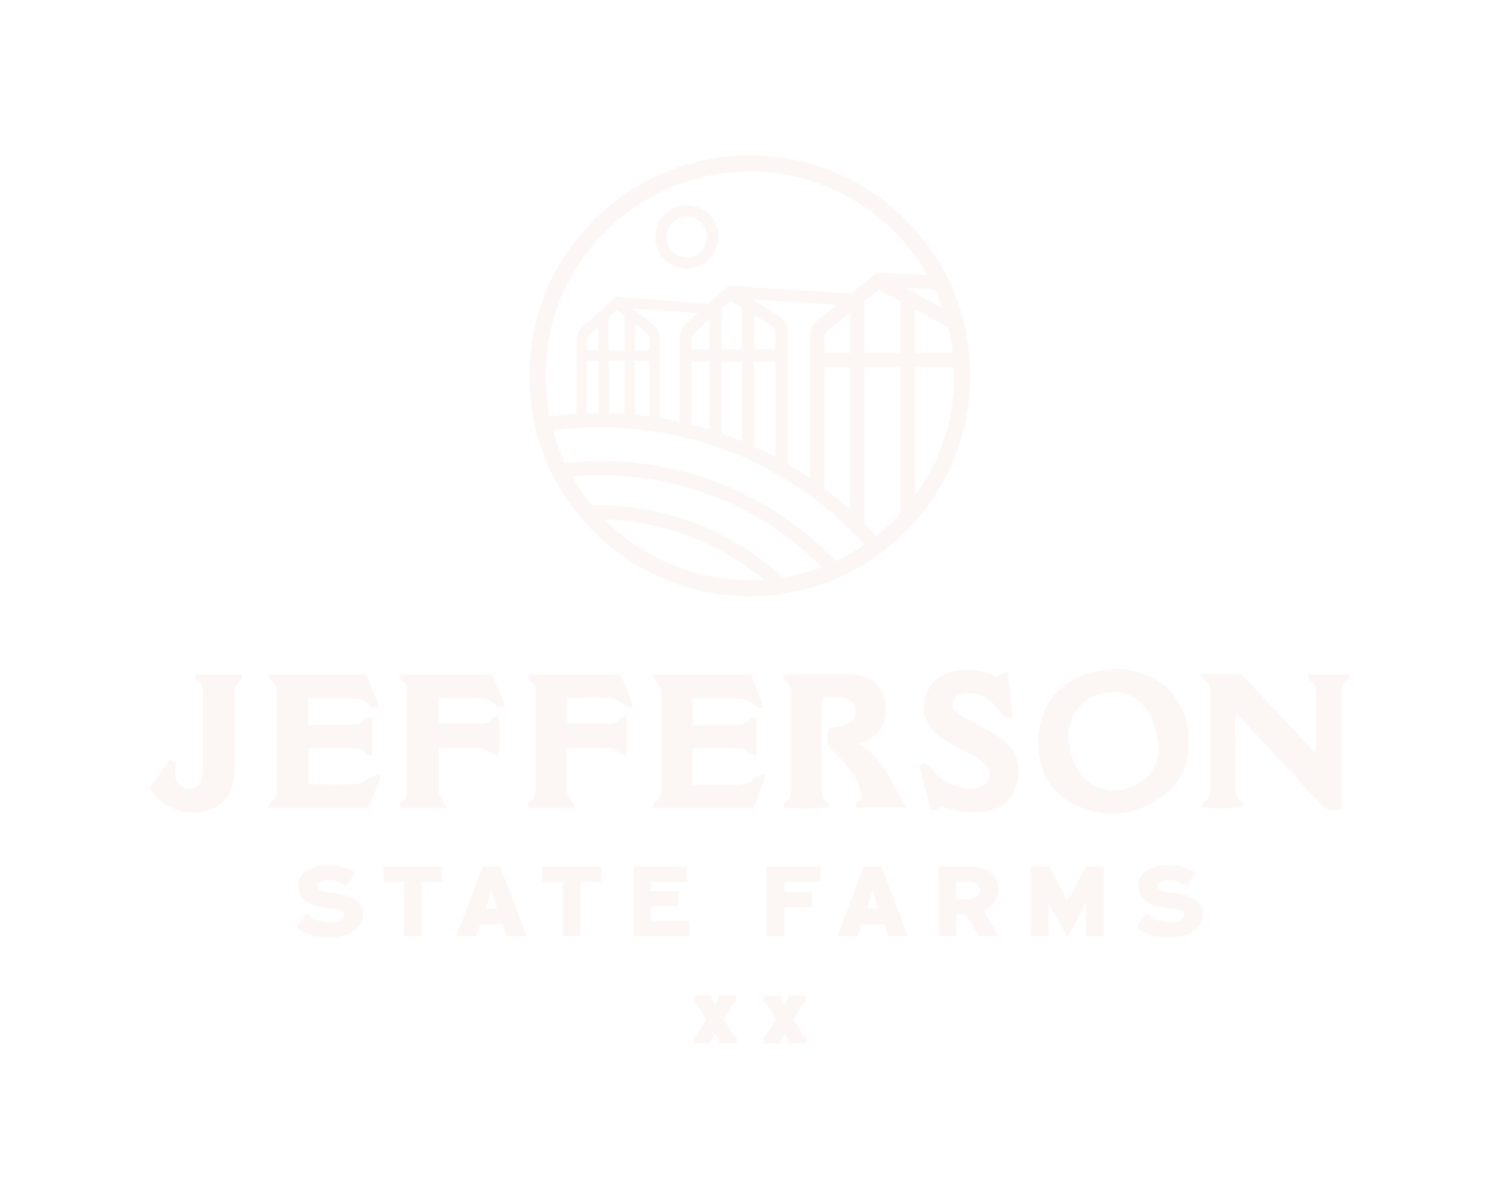 Jefferson State Farms